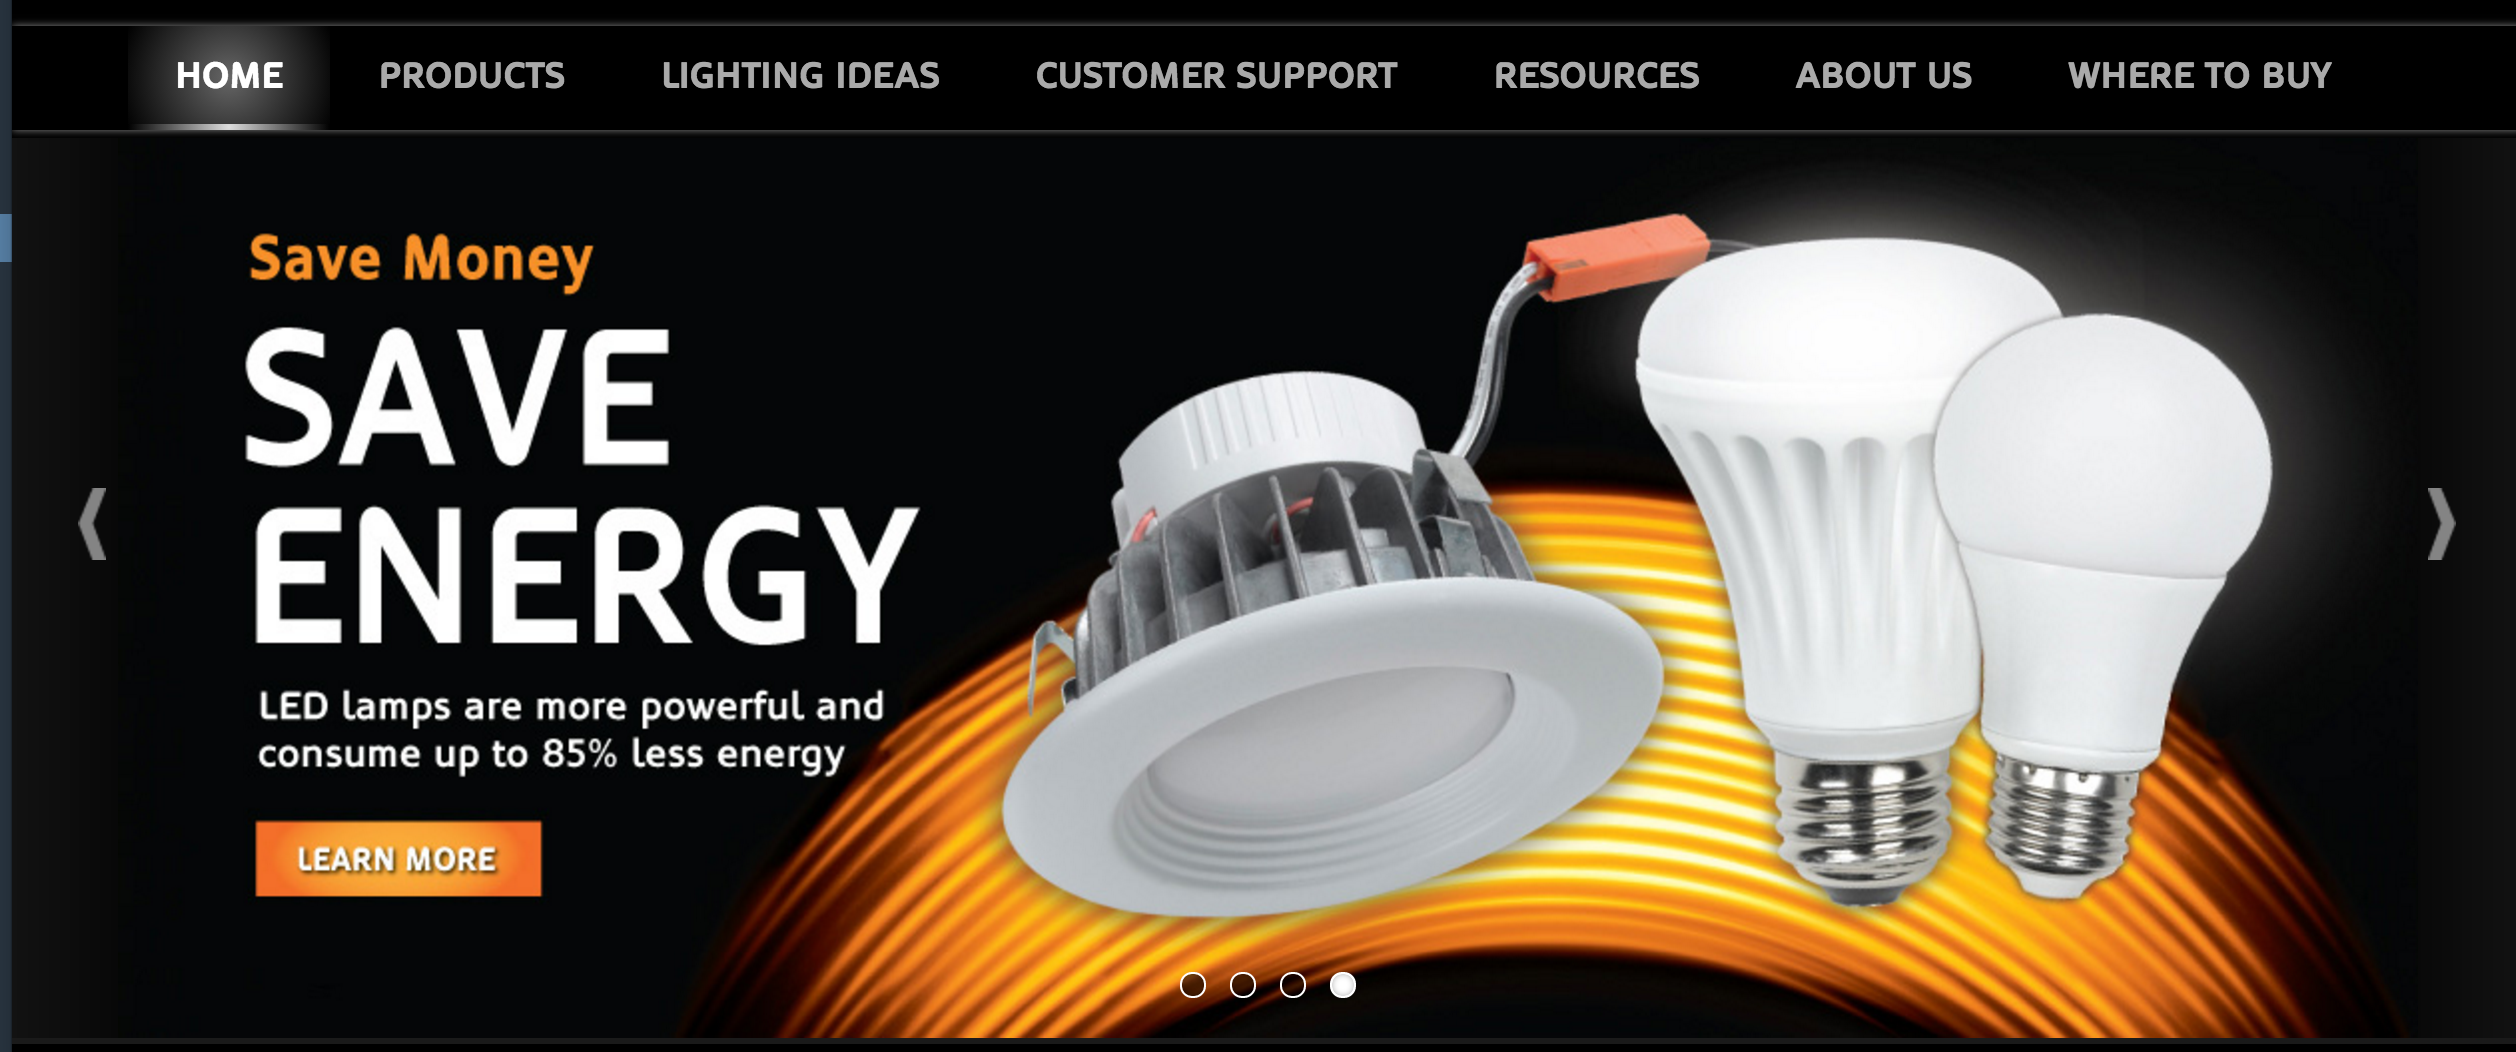 If it's new and a hot-button topic like LED lighting is, highlight it with a link to snag those products, just as Duracell has.